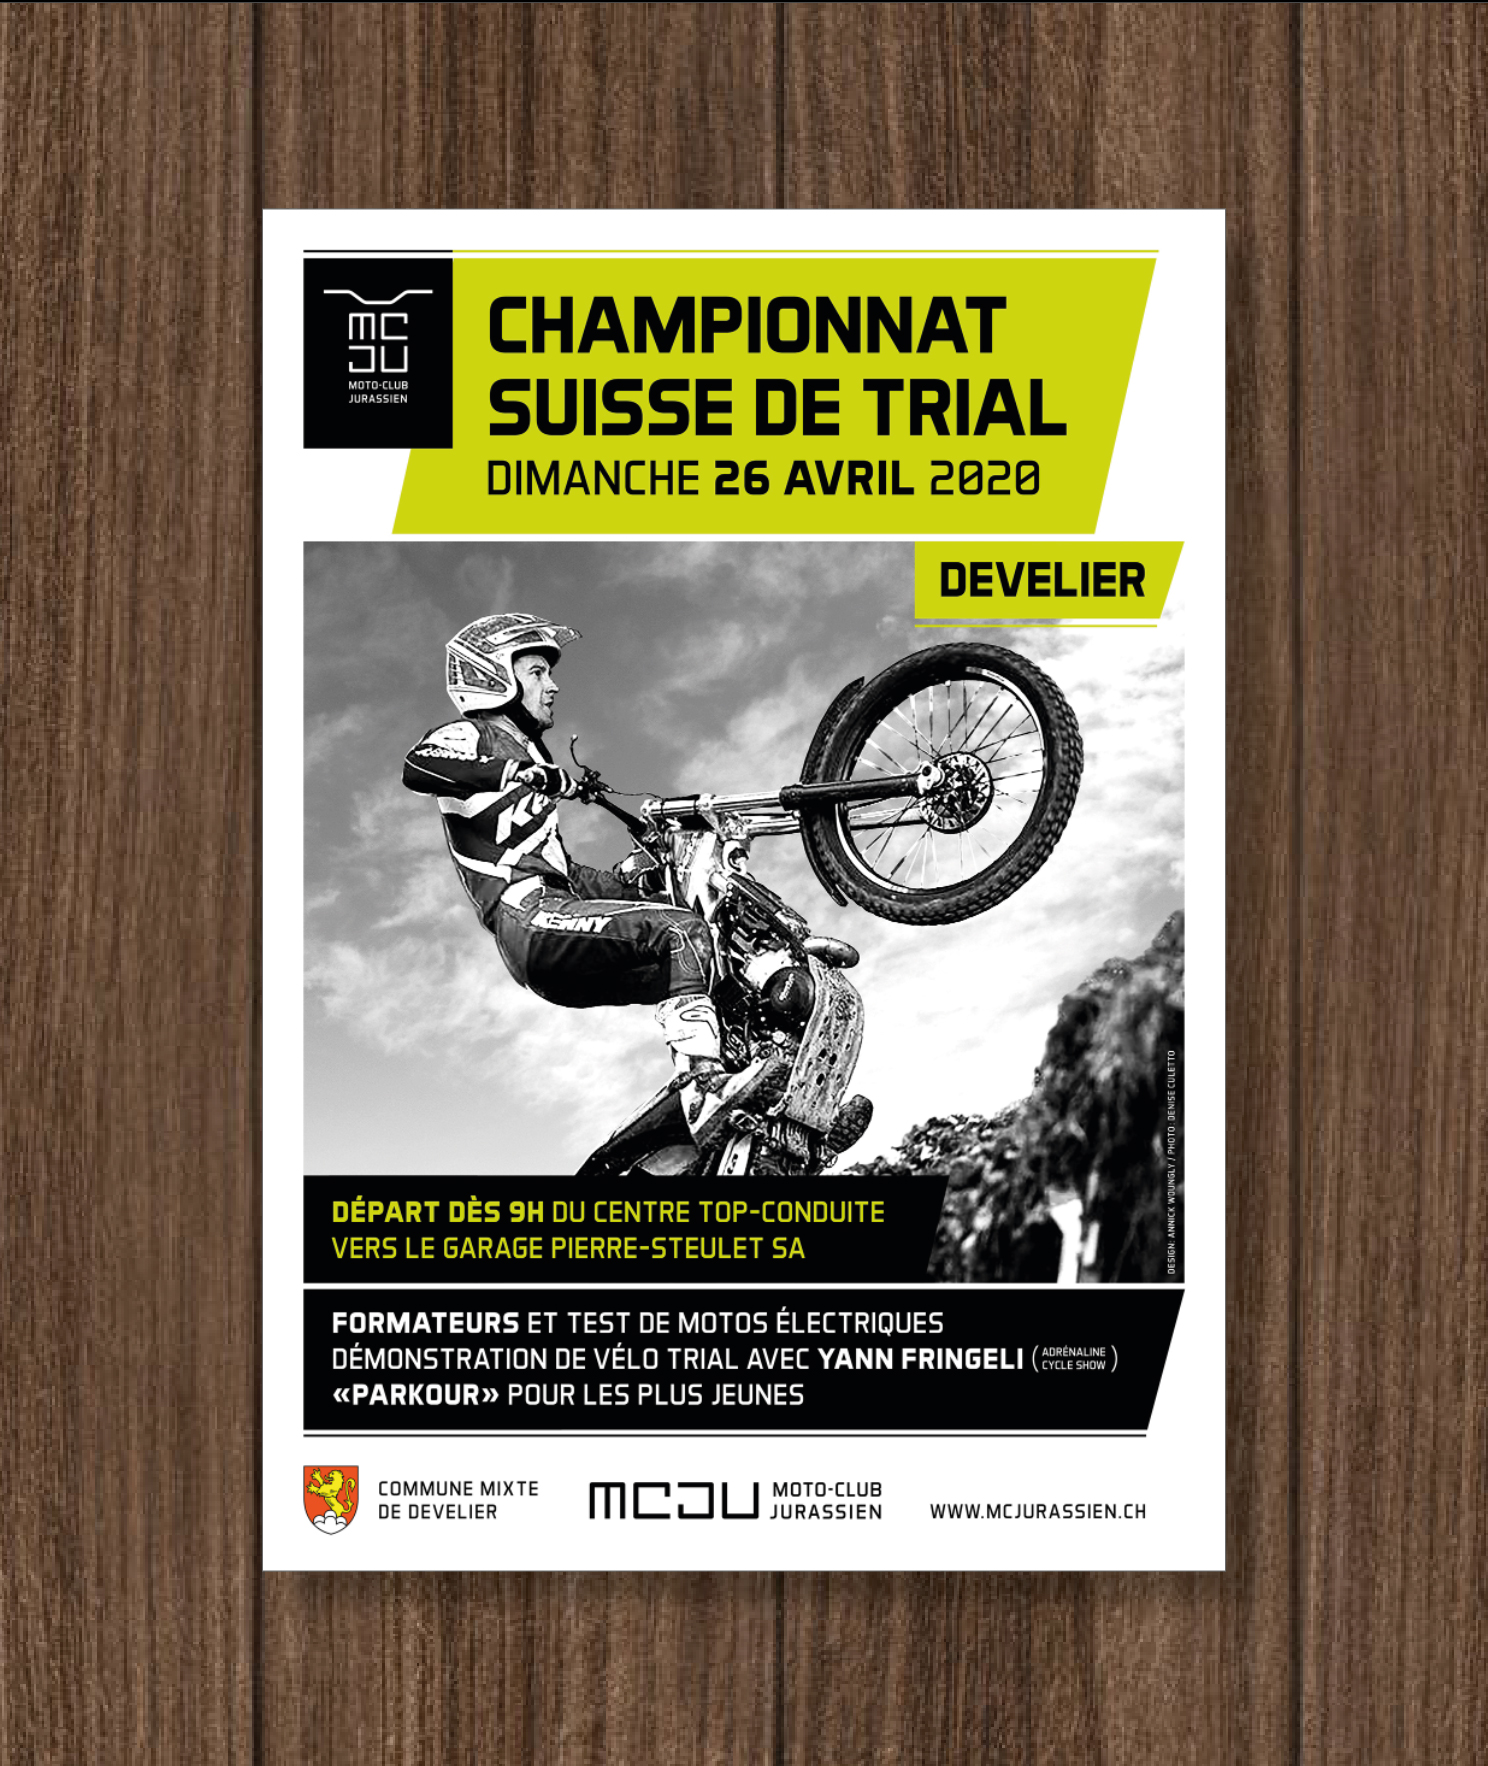 Moto Club Jurassien Poster Concept. Real poster. Trial Swiss Championship.